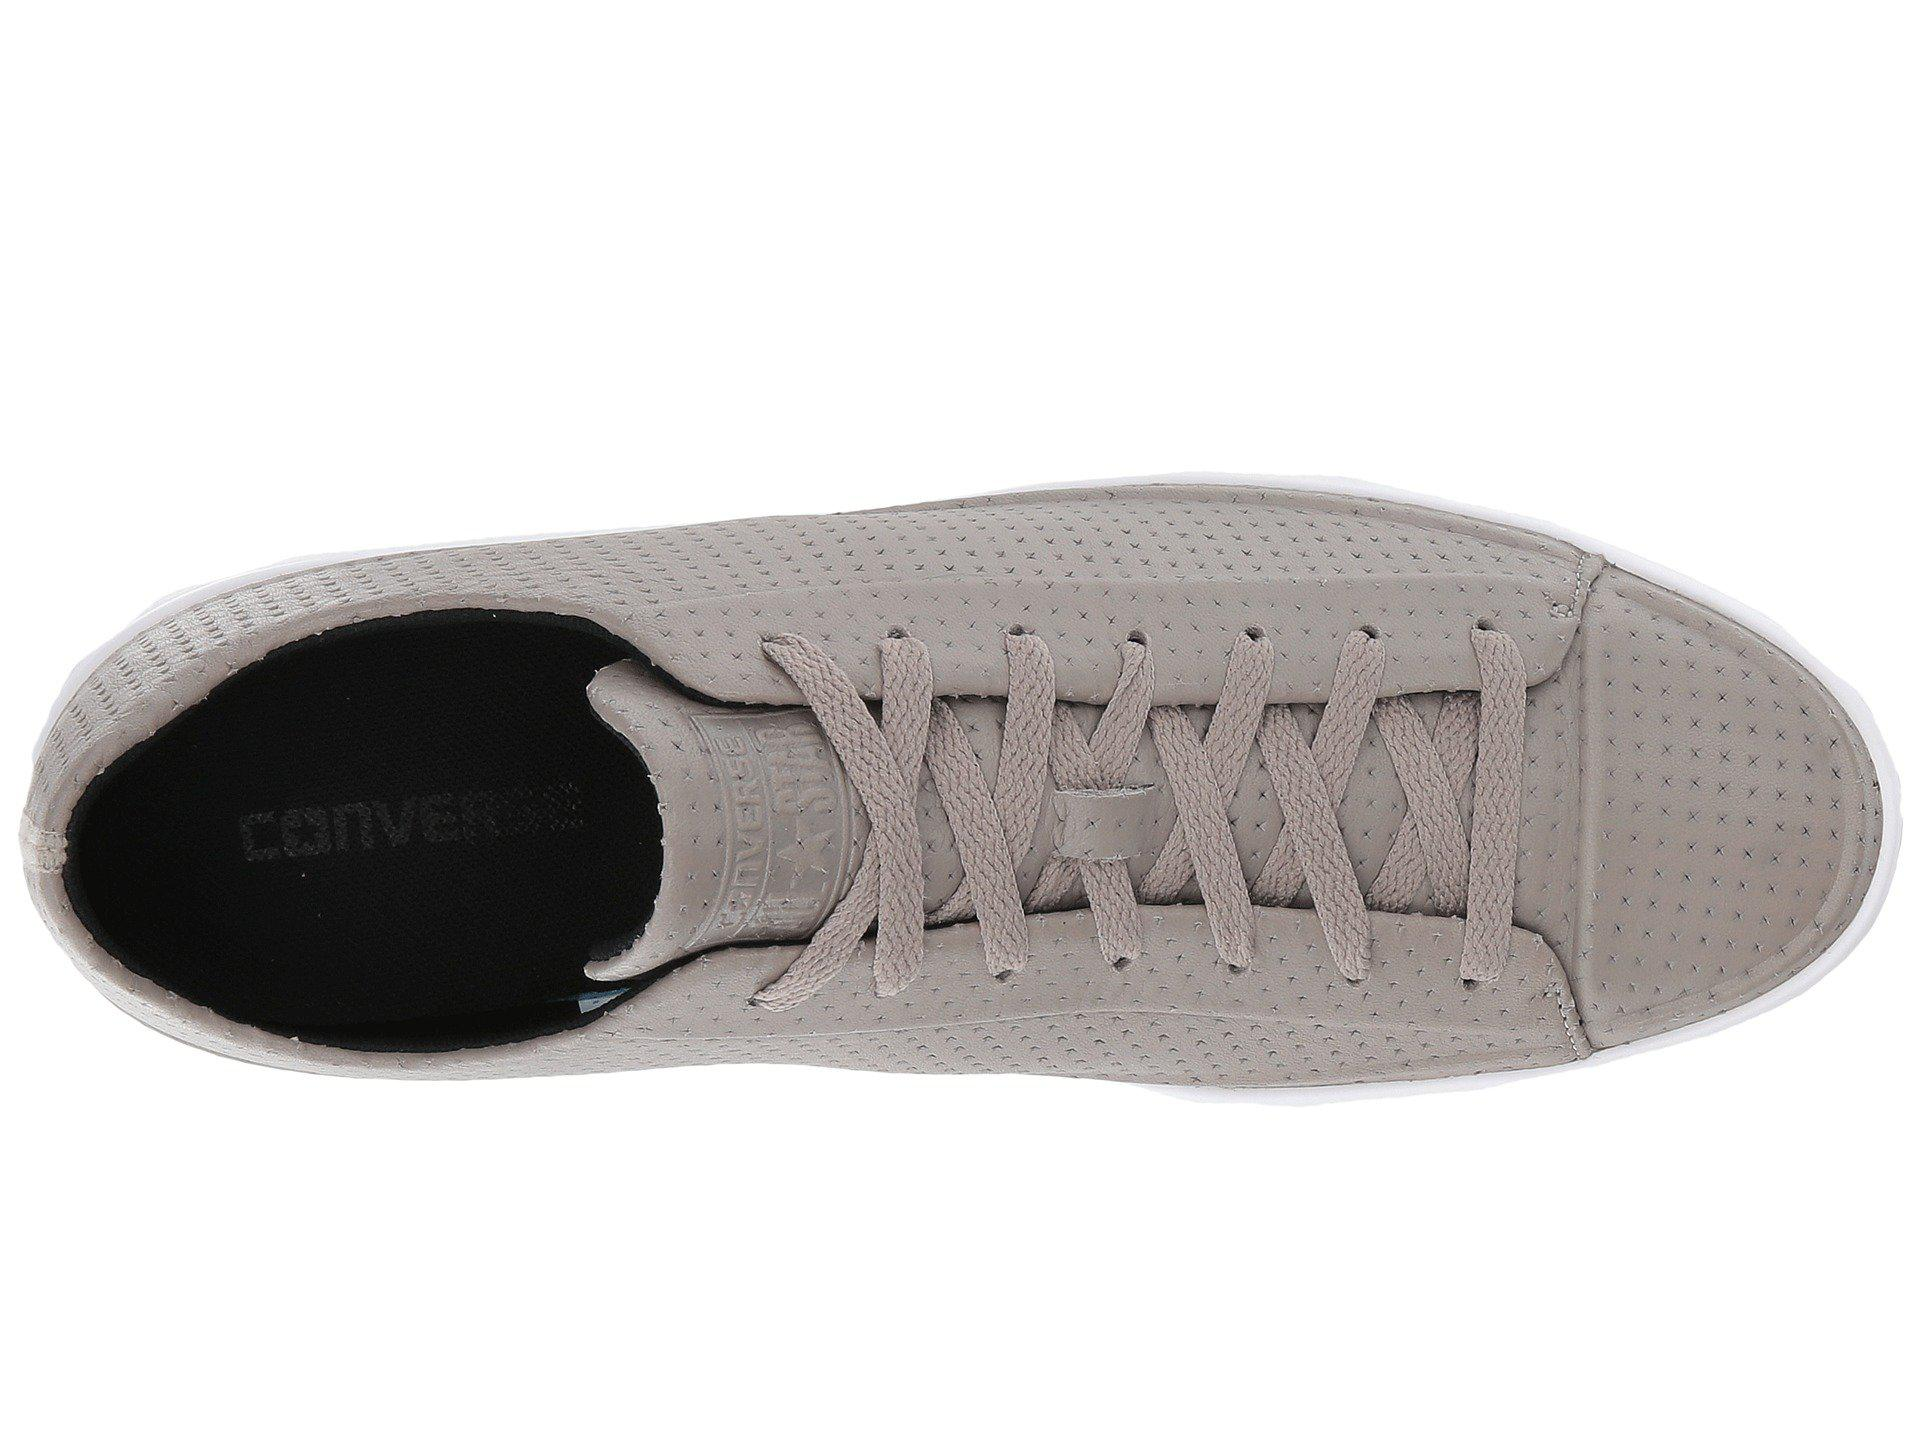 a67917658485c4 Converse - Multicolor Chuck Taylor All Star Modern Perforated Leather -  Lyst. View fullscreen